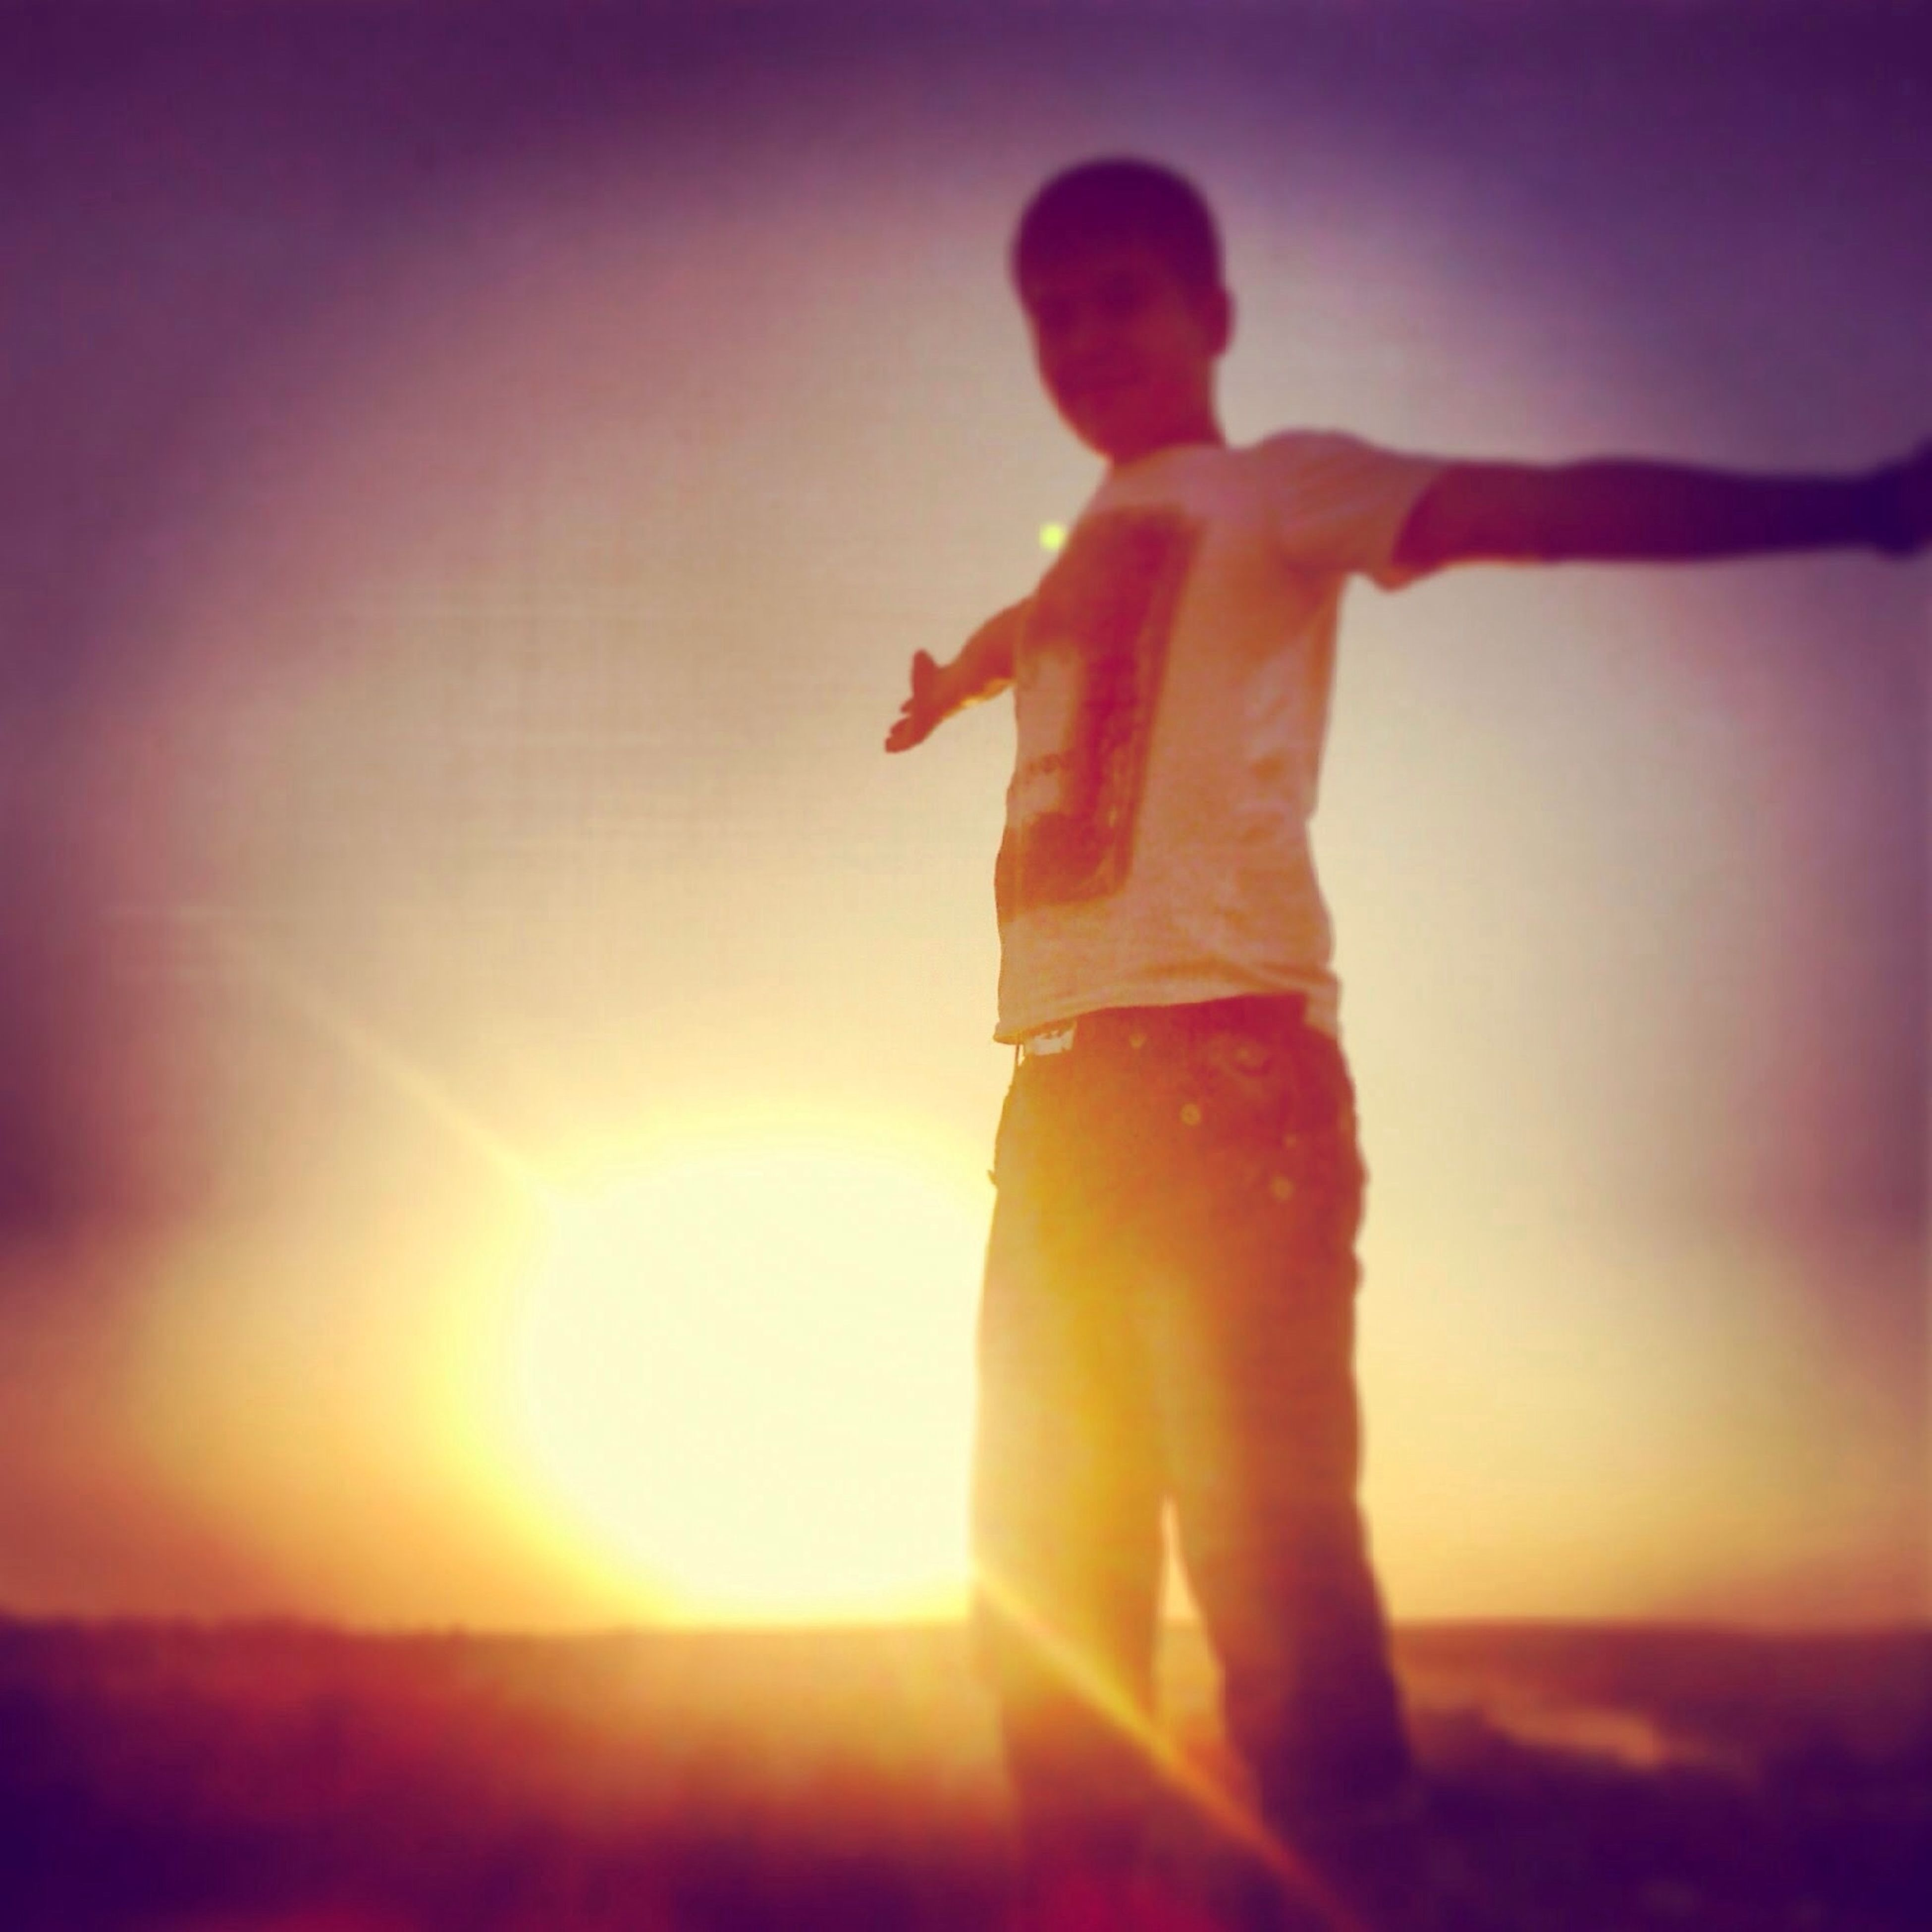 sun, sunset, lifestyles, sunlight, lens flare, leisure activity, sunbeam, sky, standing, orange color, arms raised, silhouette, side view, full length, auto post production filter, vignette, arms outstretched, low angle view